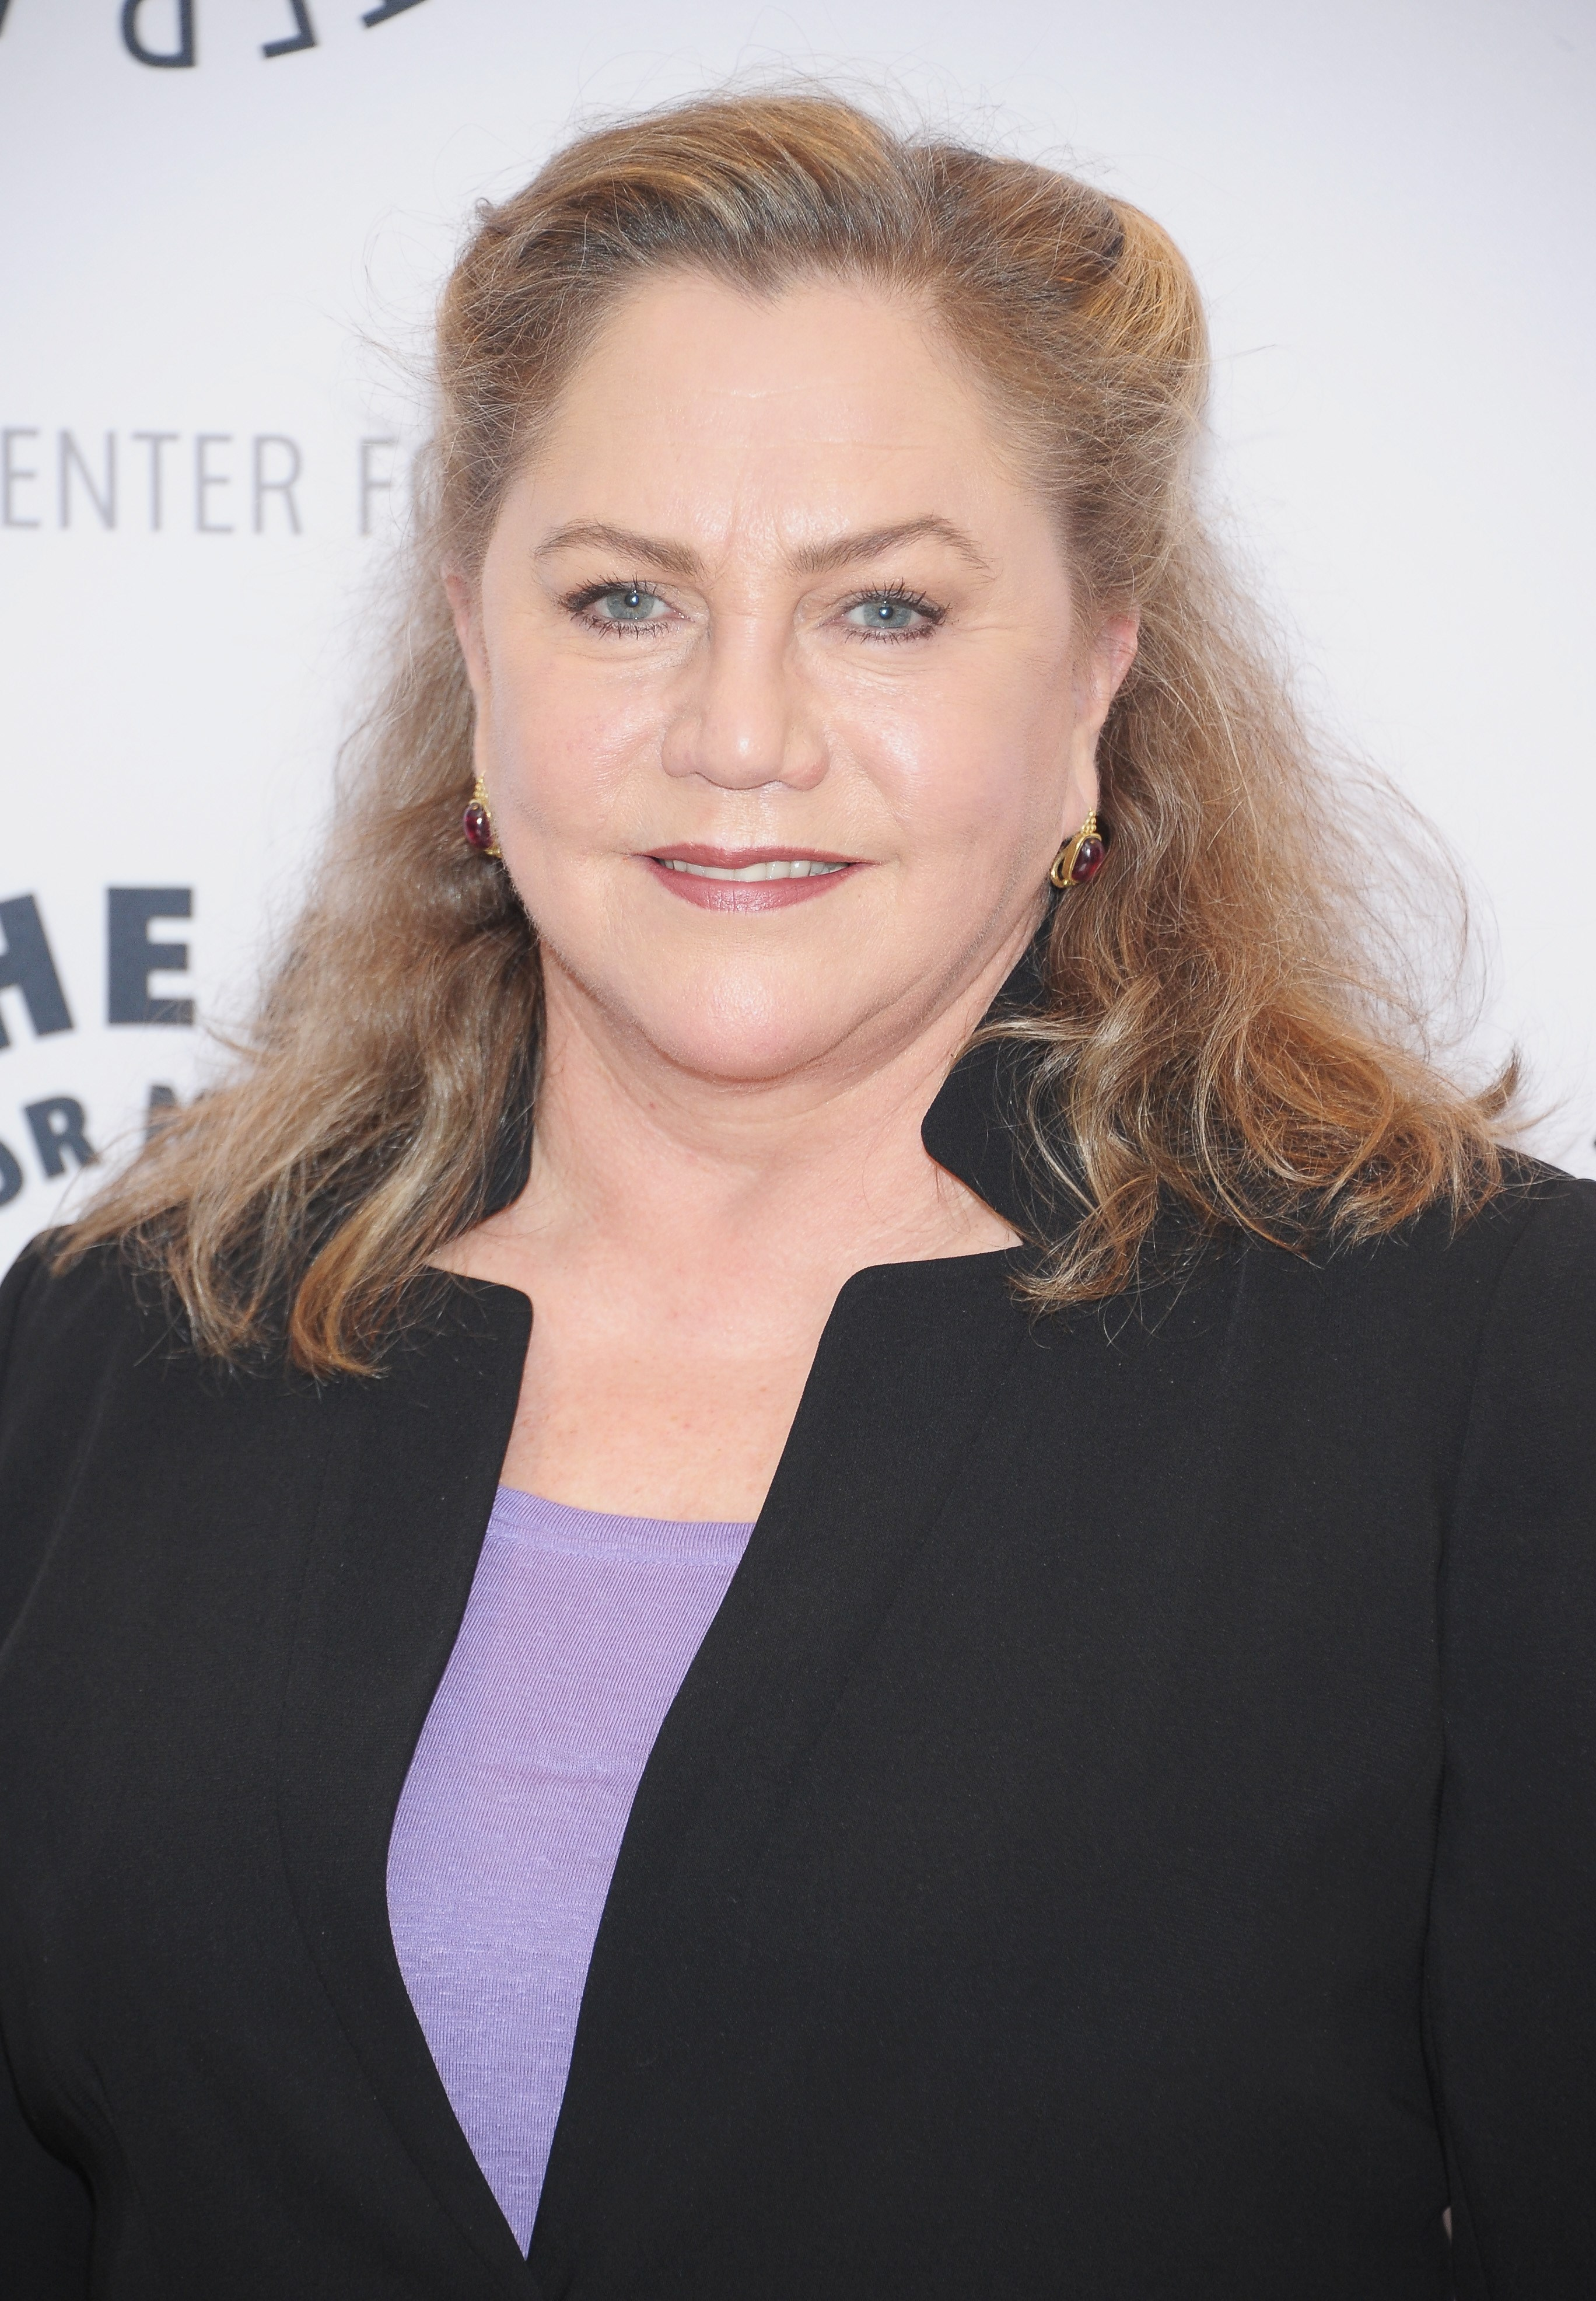 Kathleen Turner | Known people - famous people news and ...